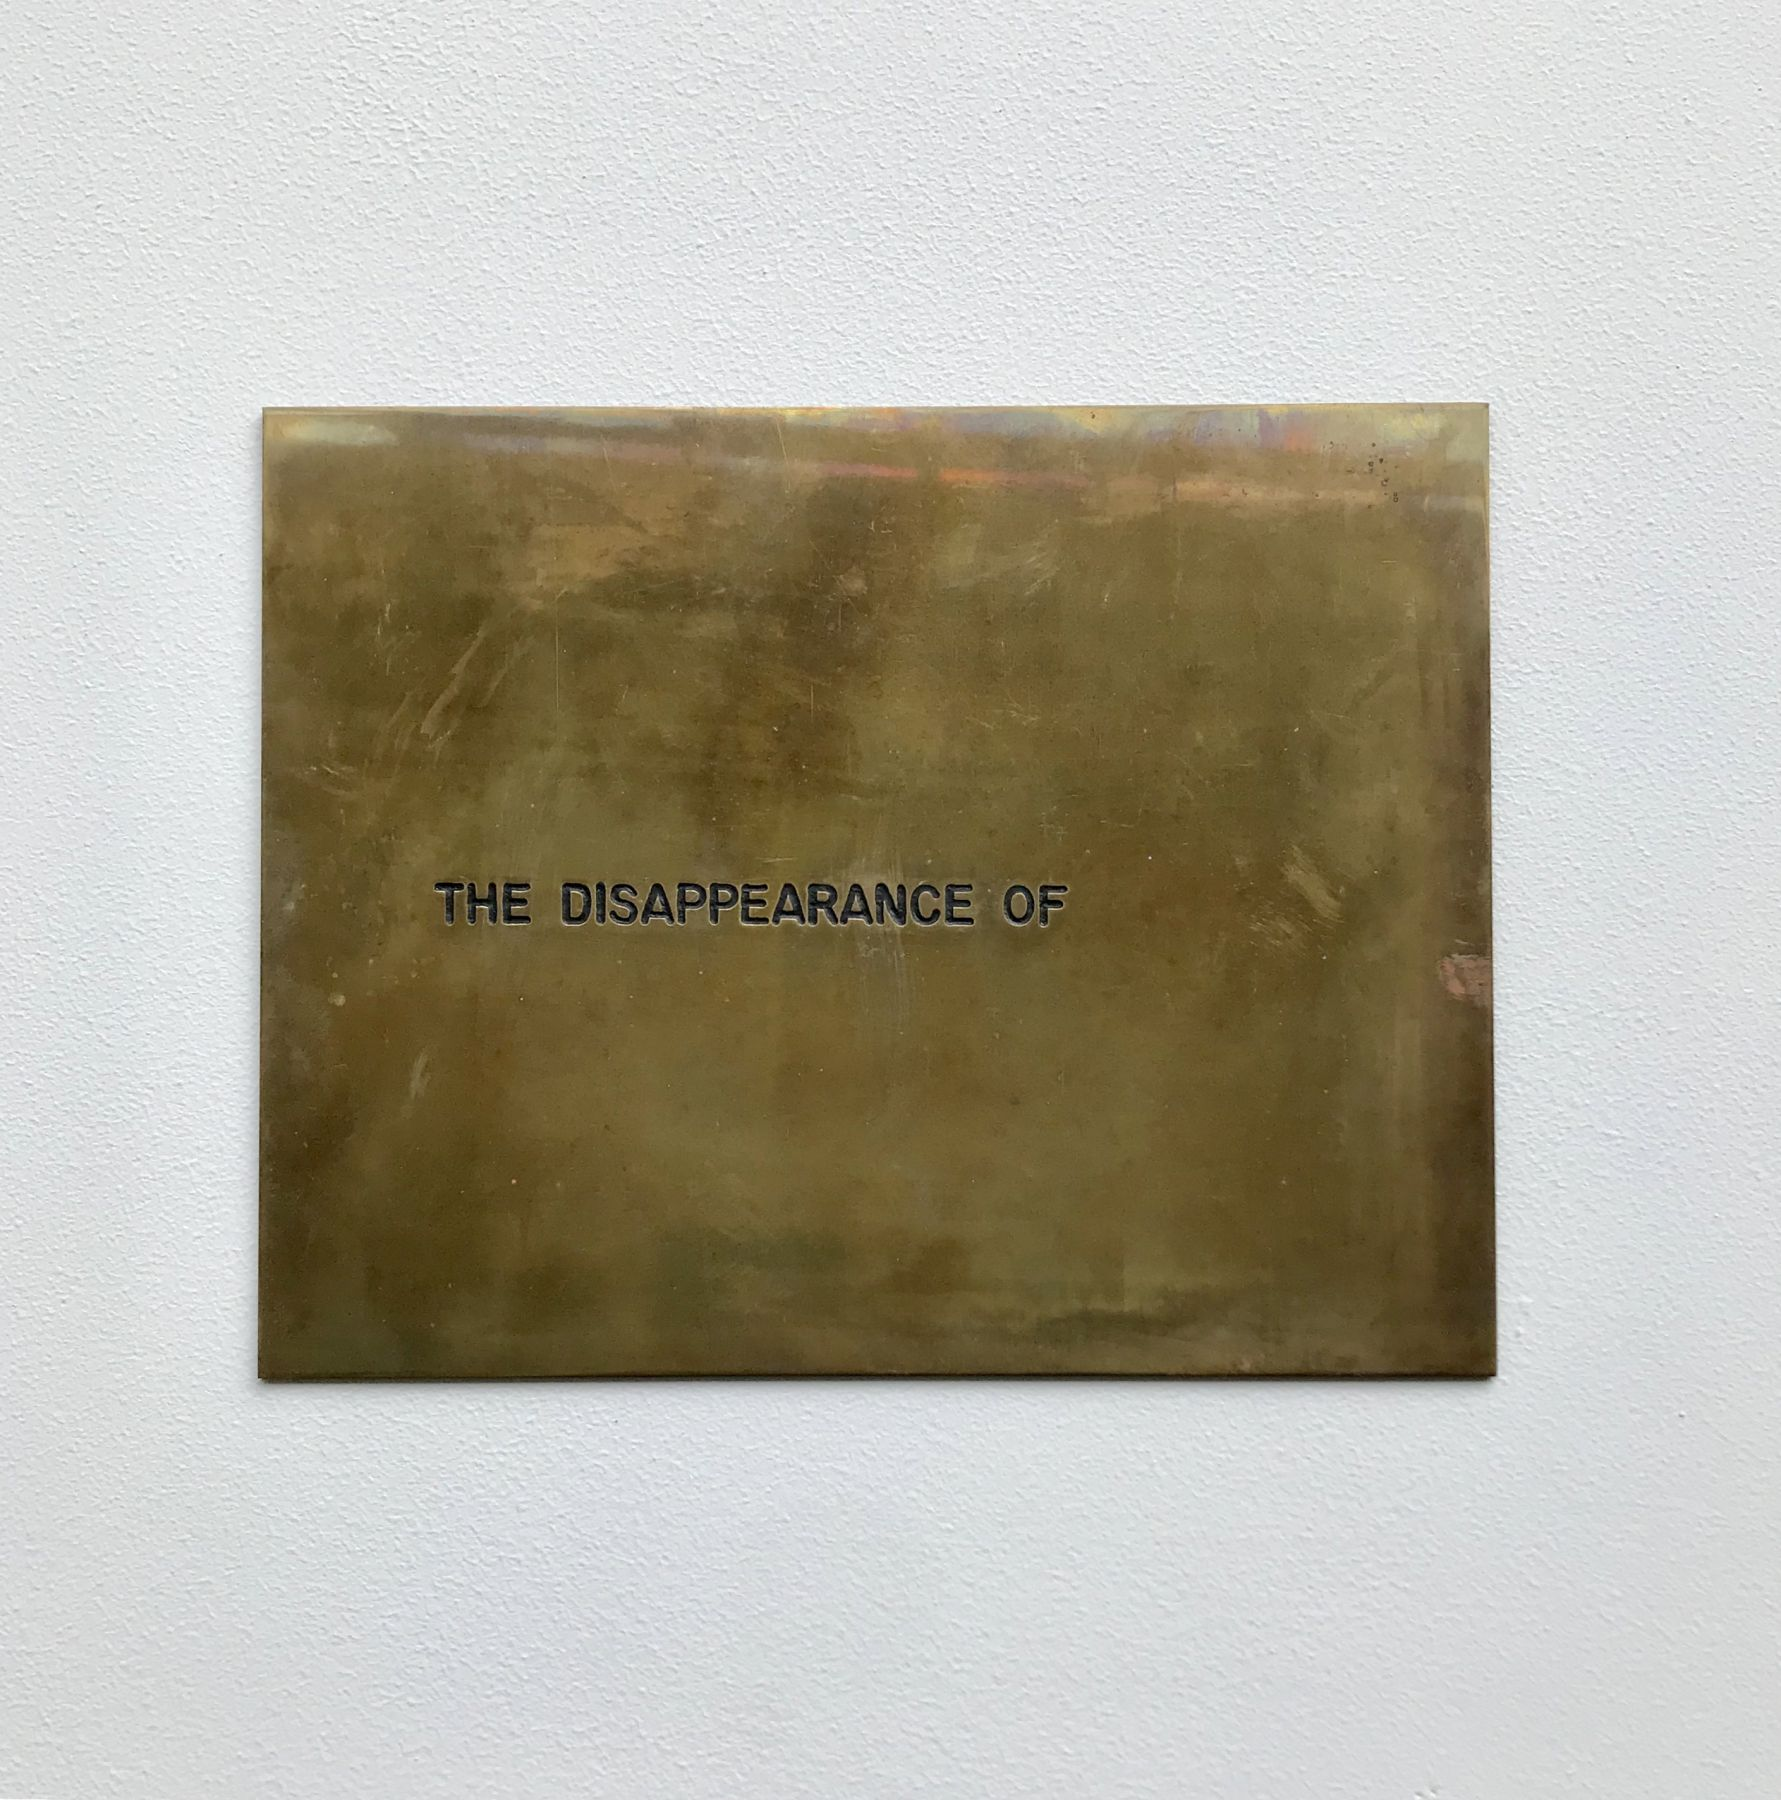 Luis Camnitzer, The Disappearance of..., 1971-1973